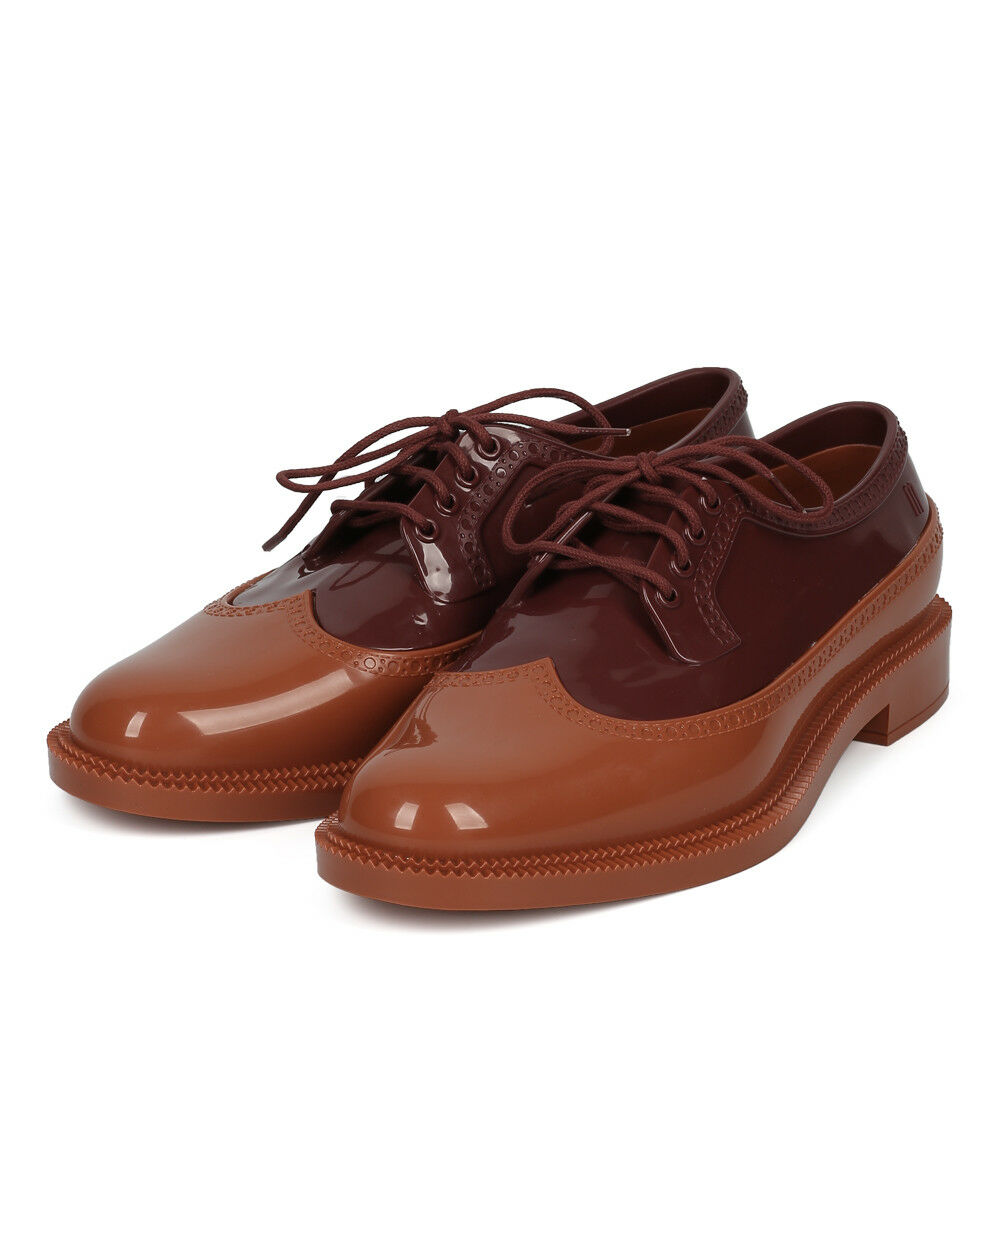 New Damens Melissa Classic Brogue Loafer PVC Lace Up Spectator Loafer Brogue 2349fd